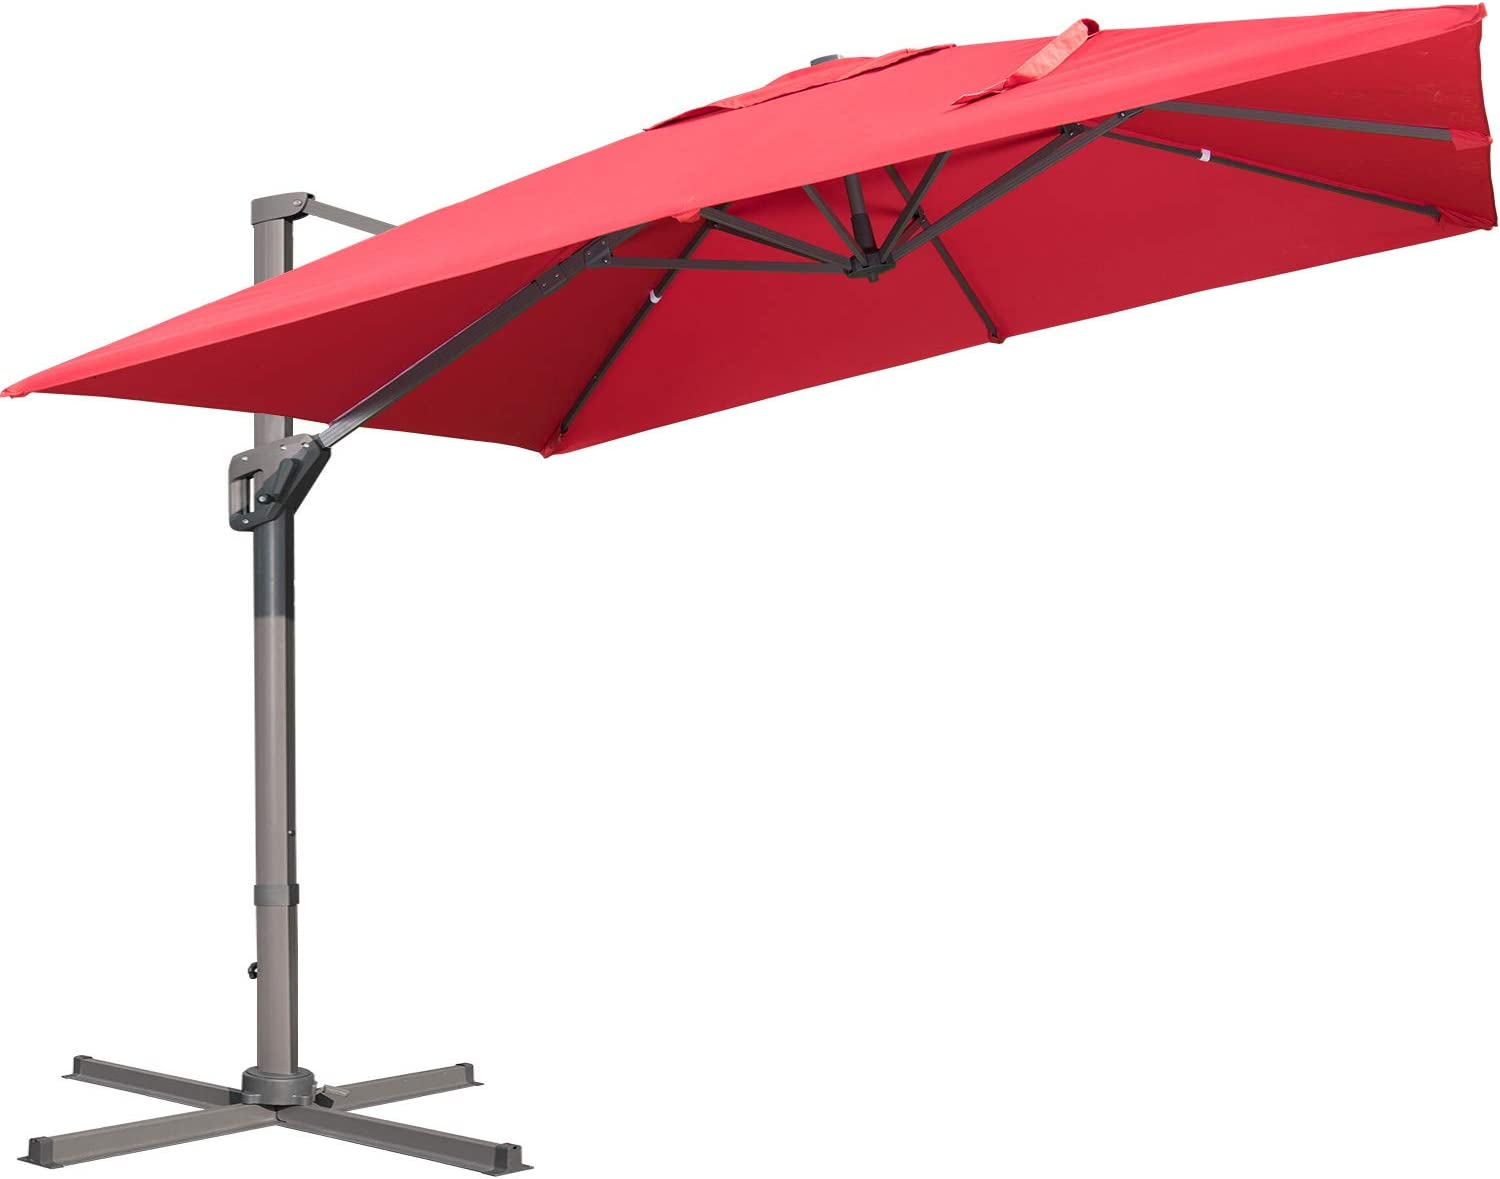 LKINBO 10x10ft Patio Offset Hanging Umbrella Square Deluxe Outdoor Cantilever Umbrella Large sun umbrellas 360 Degree Rotation with Lifting System and Cross Base for Garden, Backyard, Patio,Pool (Red)